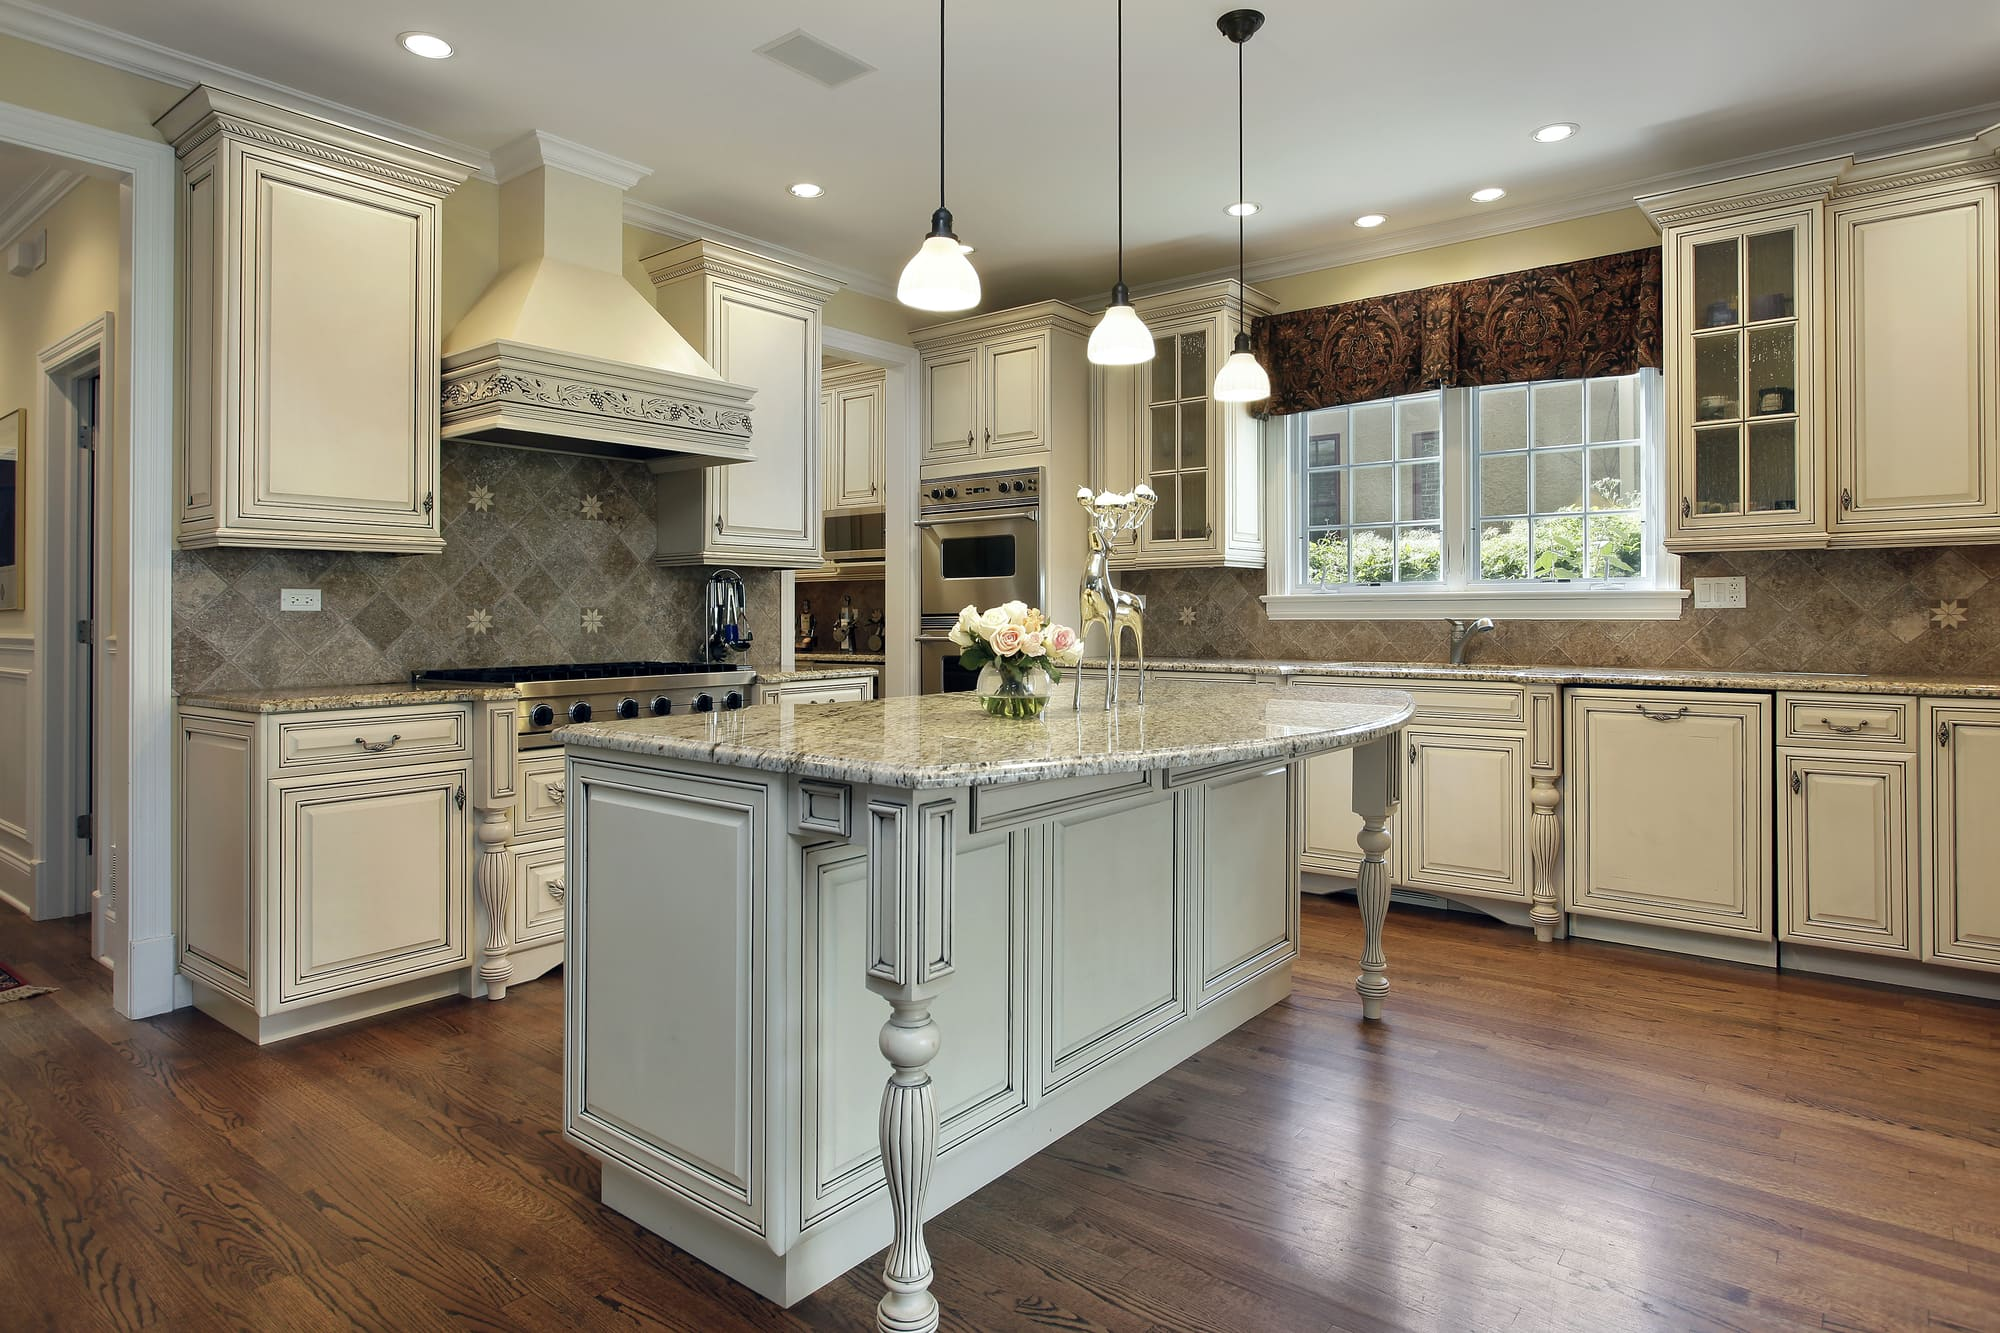 Avoid These Common Mistakes When Painting Kitchen Cabinets